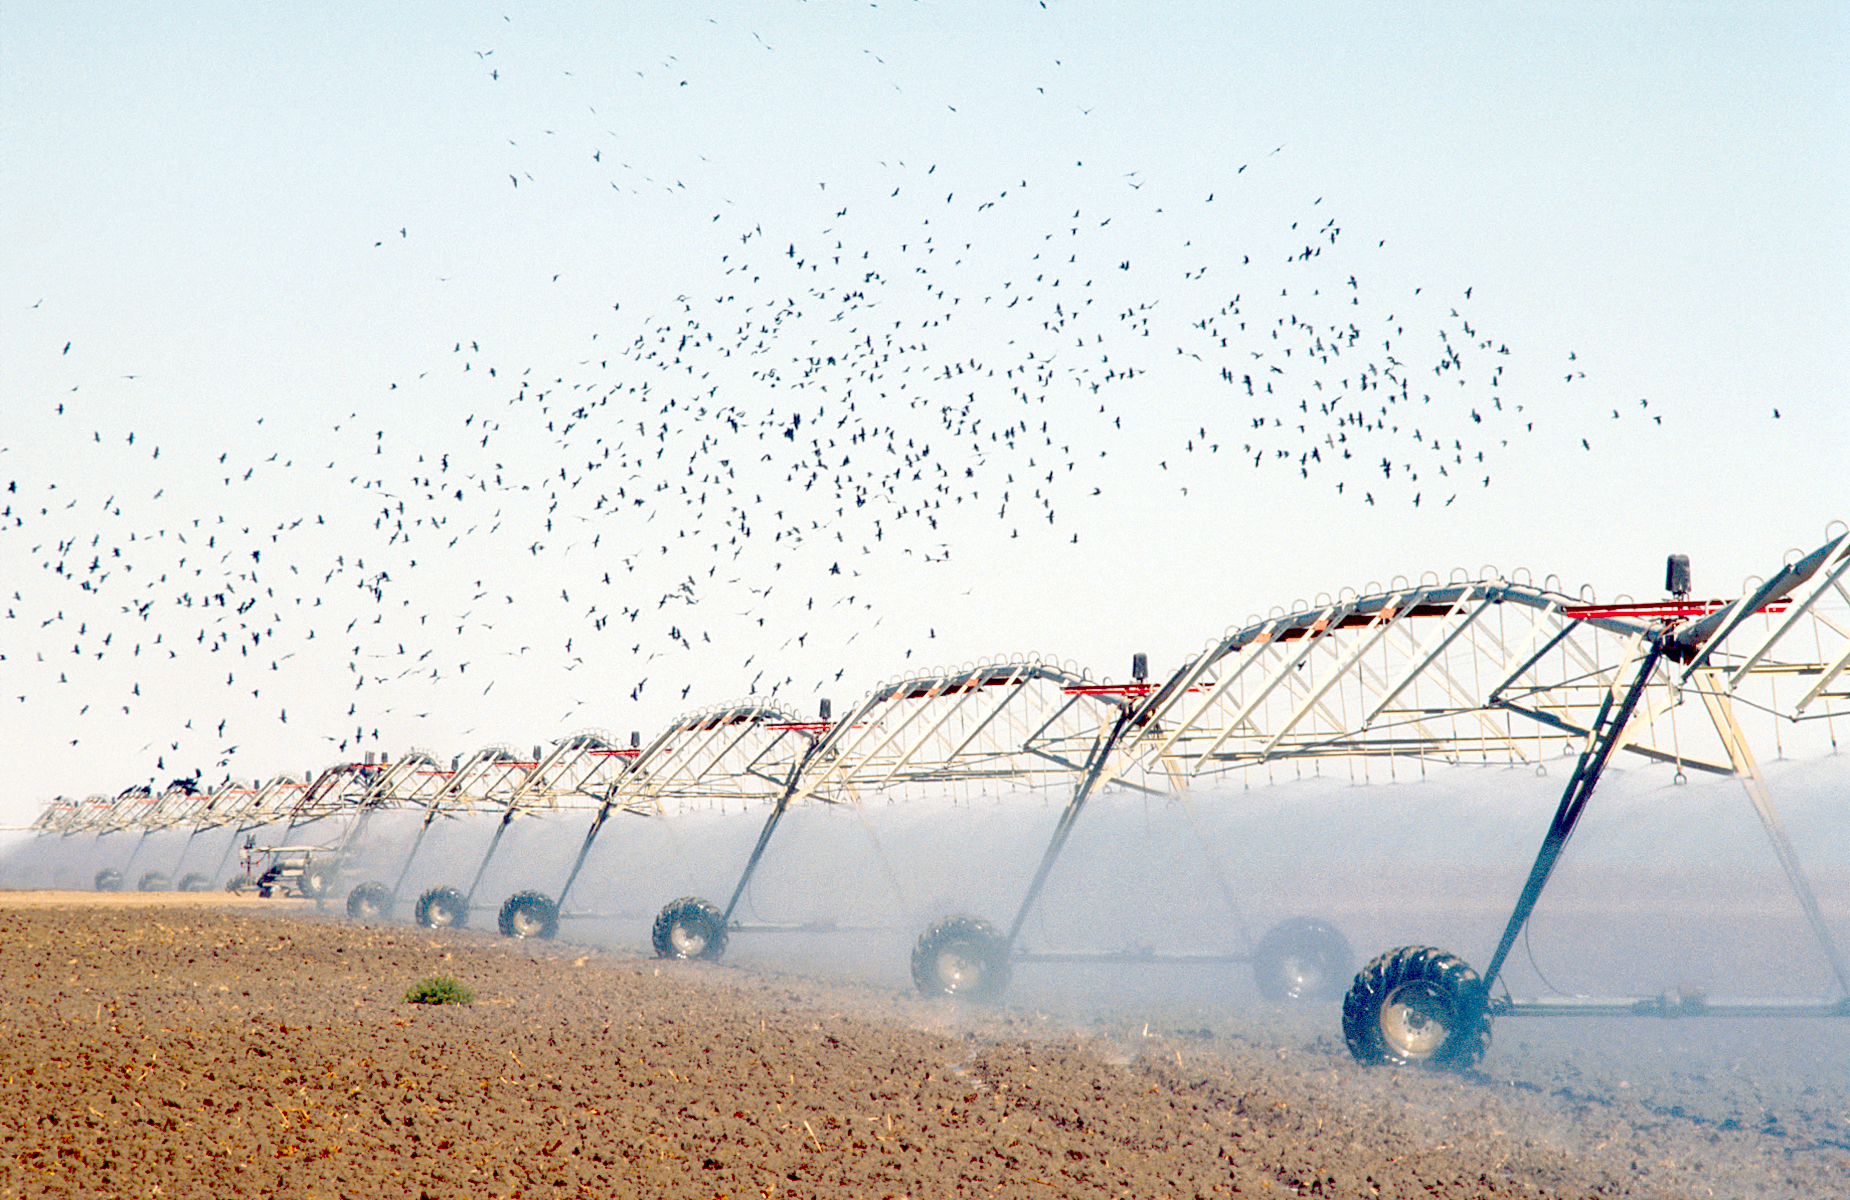 Travelling irrigator spraying water attracts birdlife near Hay, NSW. 1991. (Source: W. Van Aken, 1991)